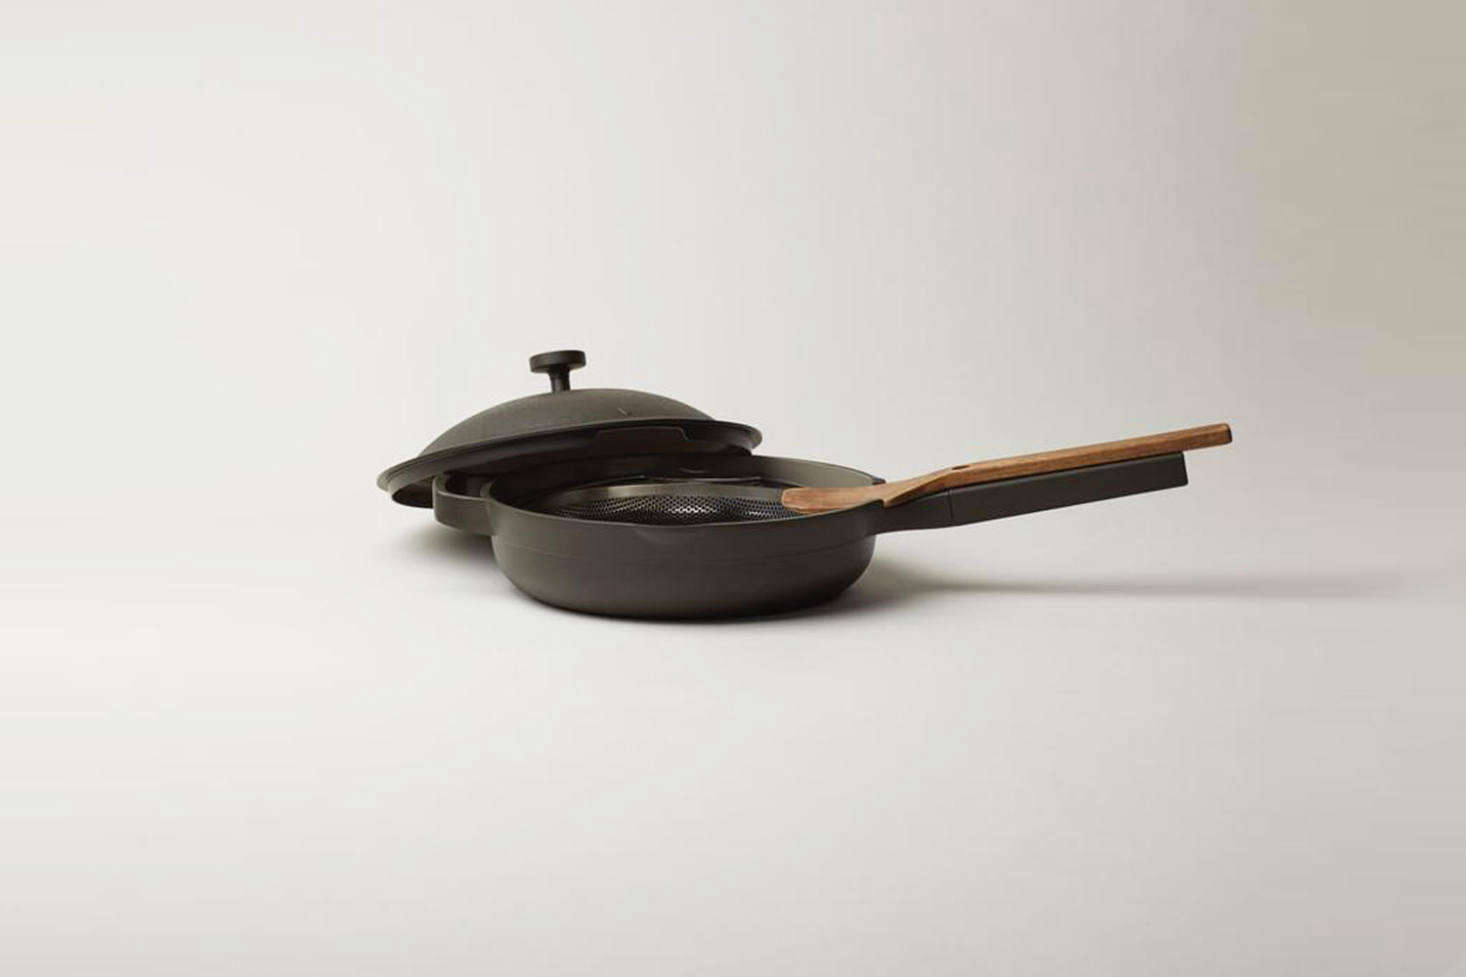 "The Always Pan from new Los Angeles-based brand Our Place is appealing for its looks and all-in-one cooking capability. It is non-stick but coated with, as the company says, a ""responsible PTFE- and PFAS-free  non-stick ceramic coating."" The core of the pan is made of heavy aluminum but as it's coated with a thin ceramic coating, no aluminum comes into contact with food. The Always Pan is $5 at Our Place."